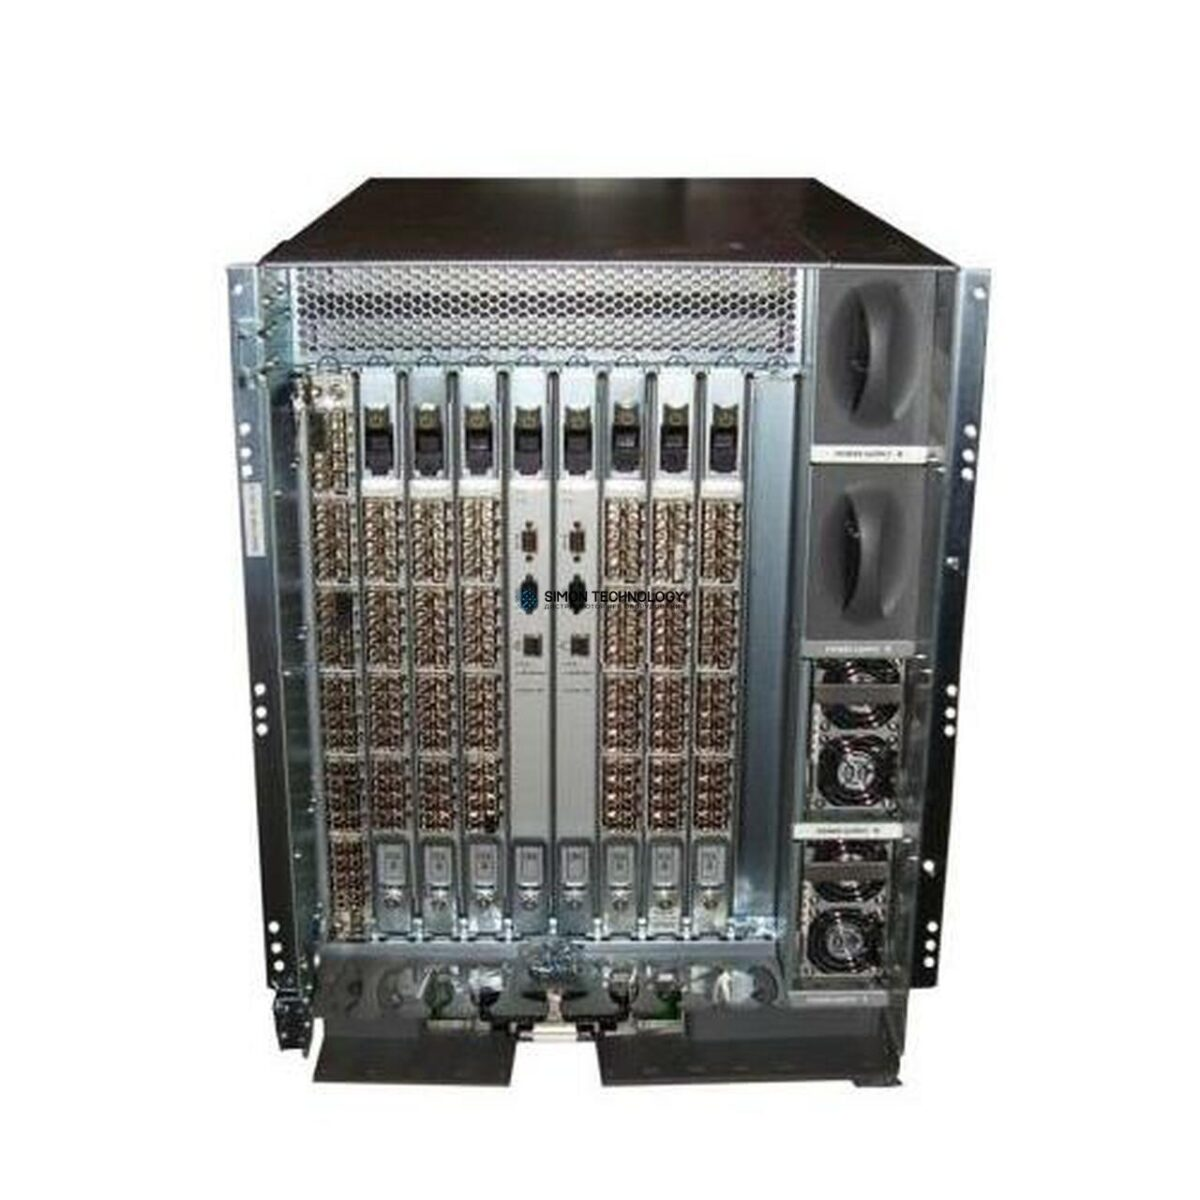 HPE CHASSIS. 48K DIRECTOR (435738-001)